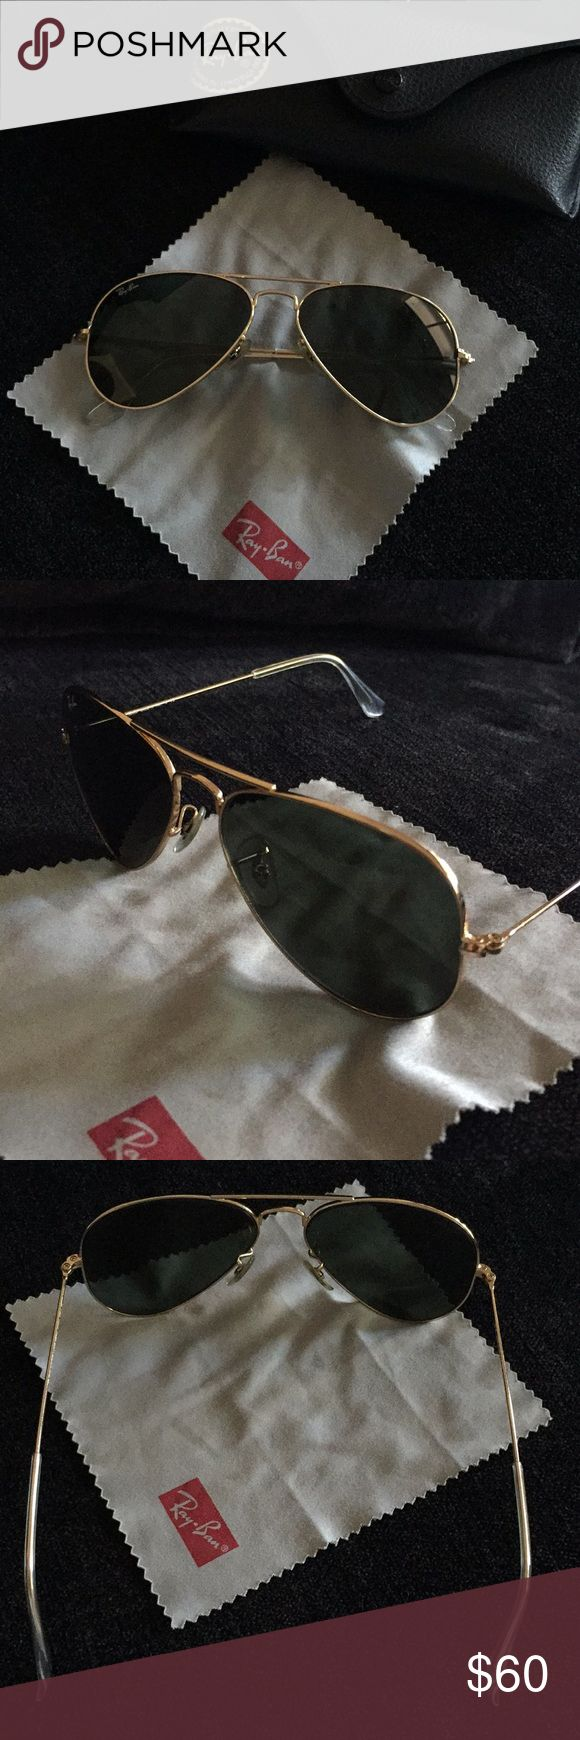 Ray ban sunglasses RB3025 RB 3025 aviator large metal W3234 55014 3N gold-green classic. Authentic made in Italy. Perfect condition. Ray-Ban Accessories Sunglasses